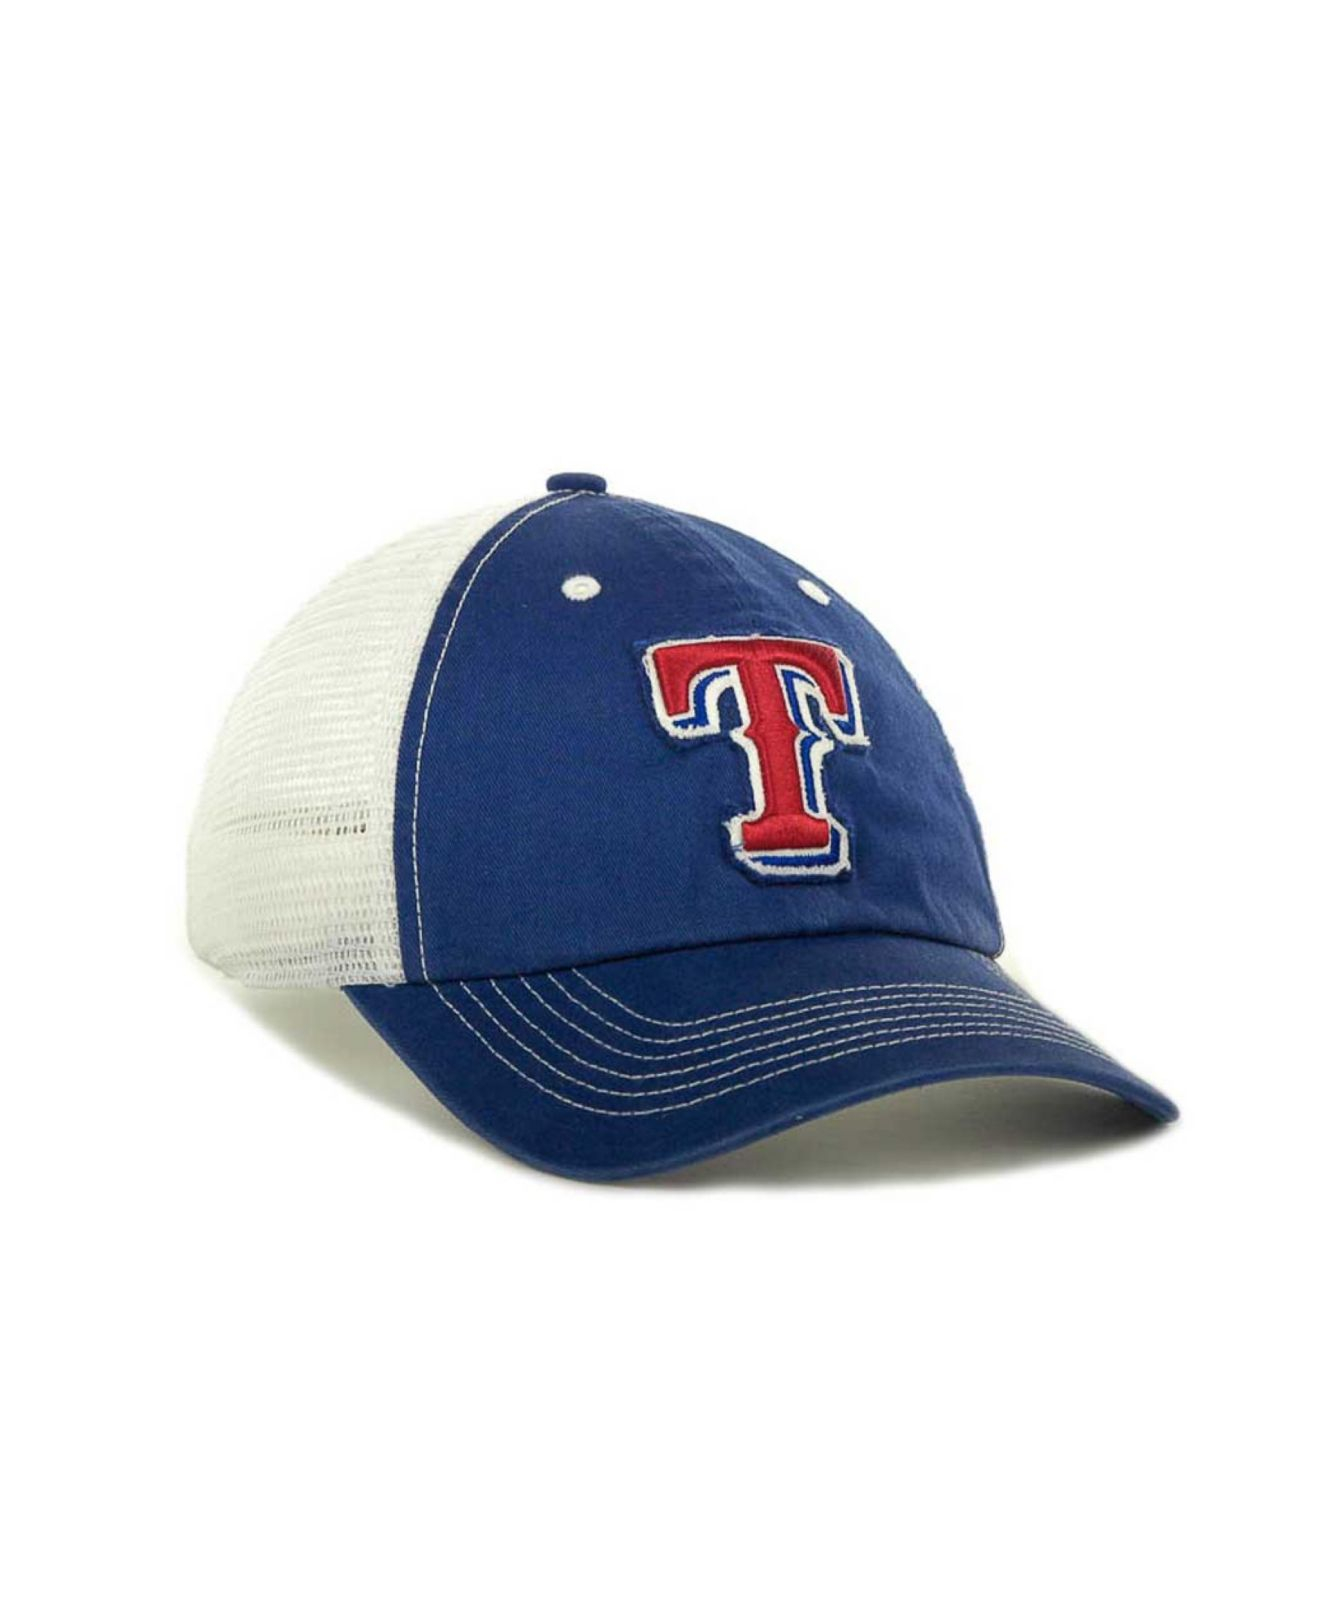 size 40 1c856 879ee ... where to buy hat royal lyst 47 brand texas rangers mlb blue mountain  franchise cap in ...